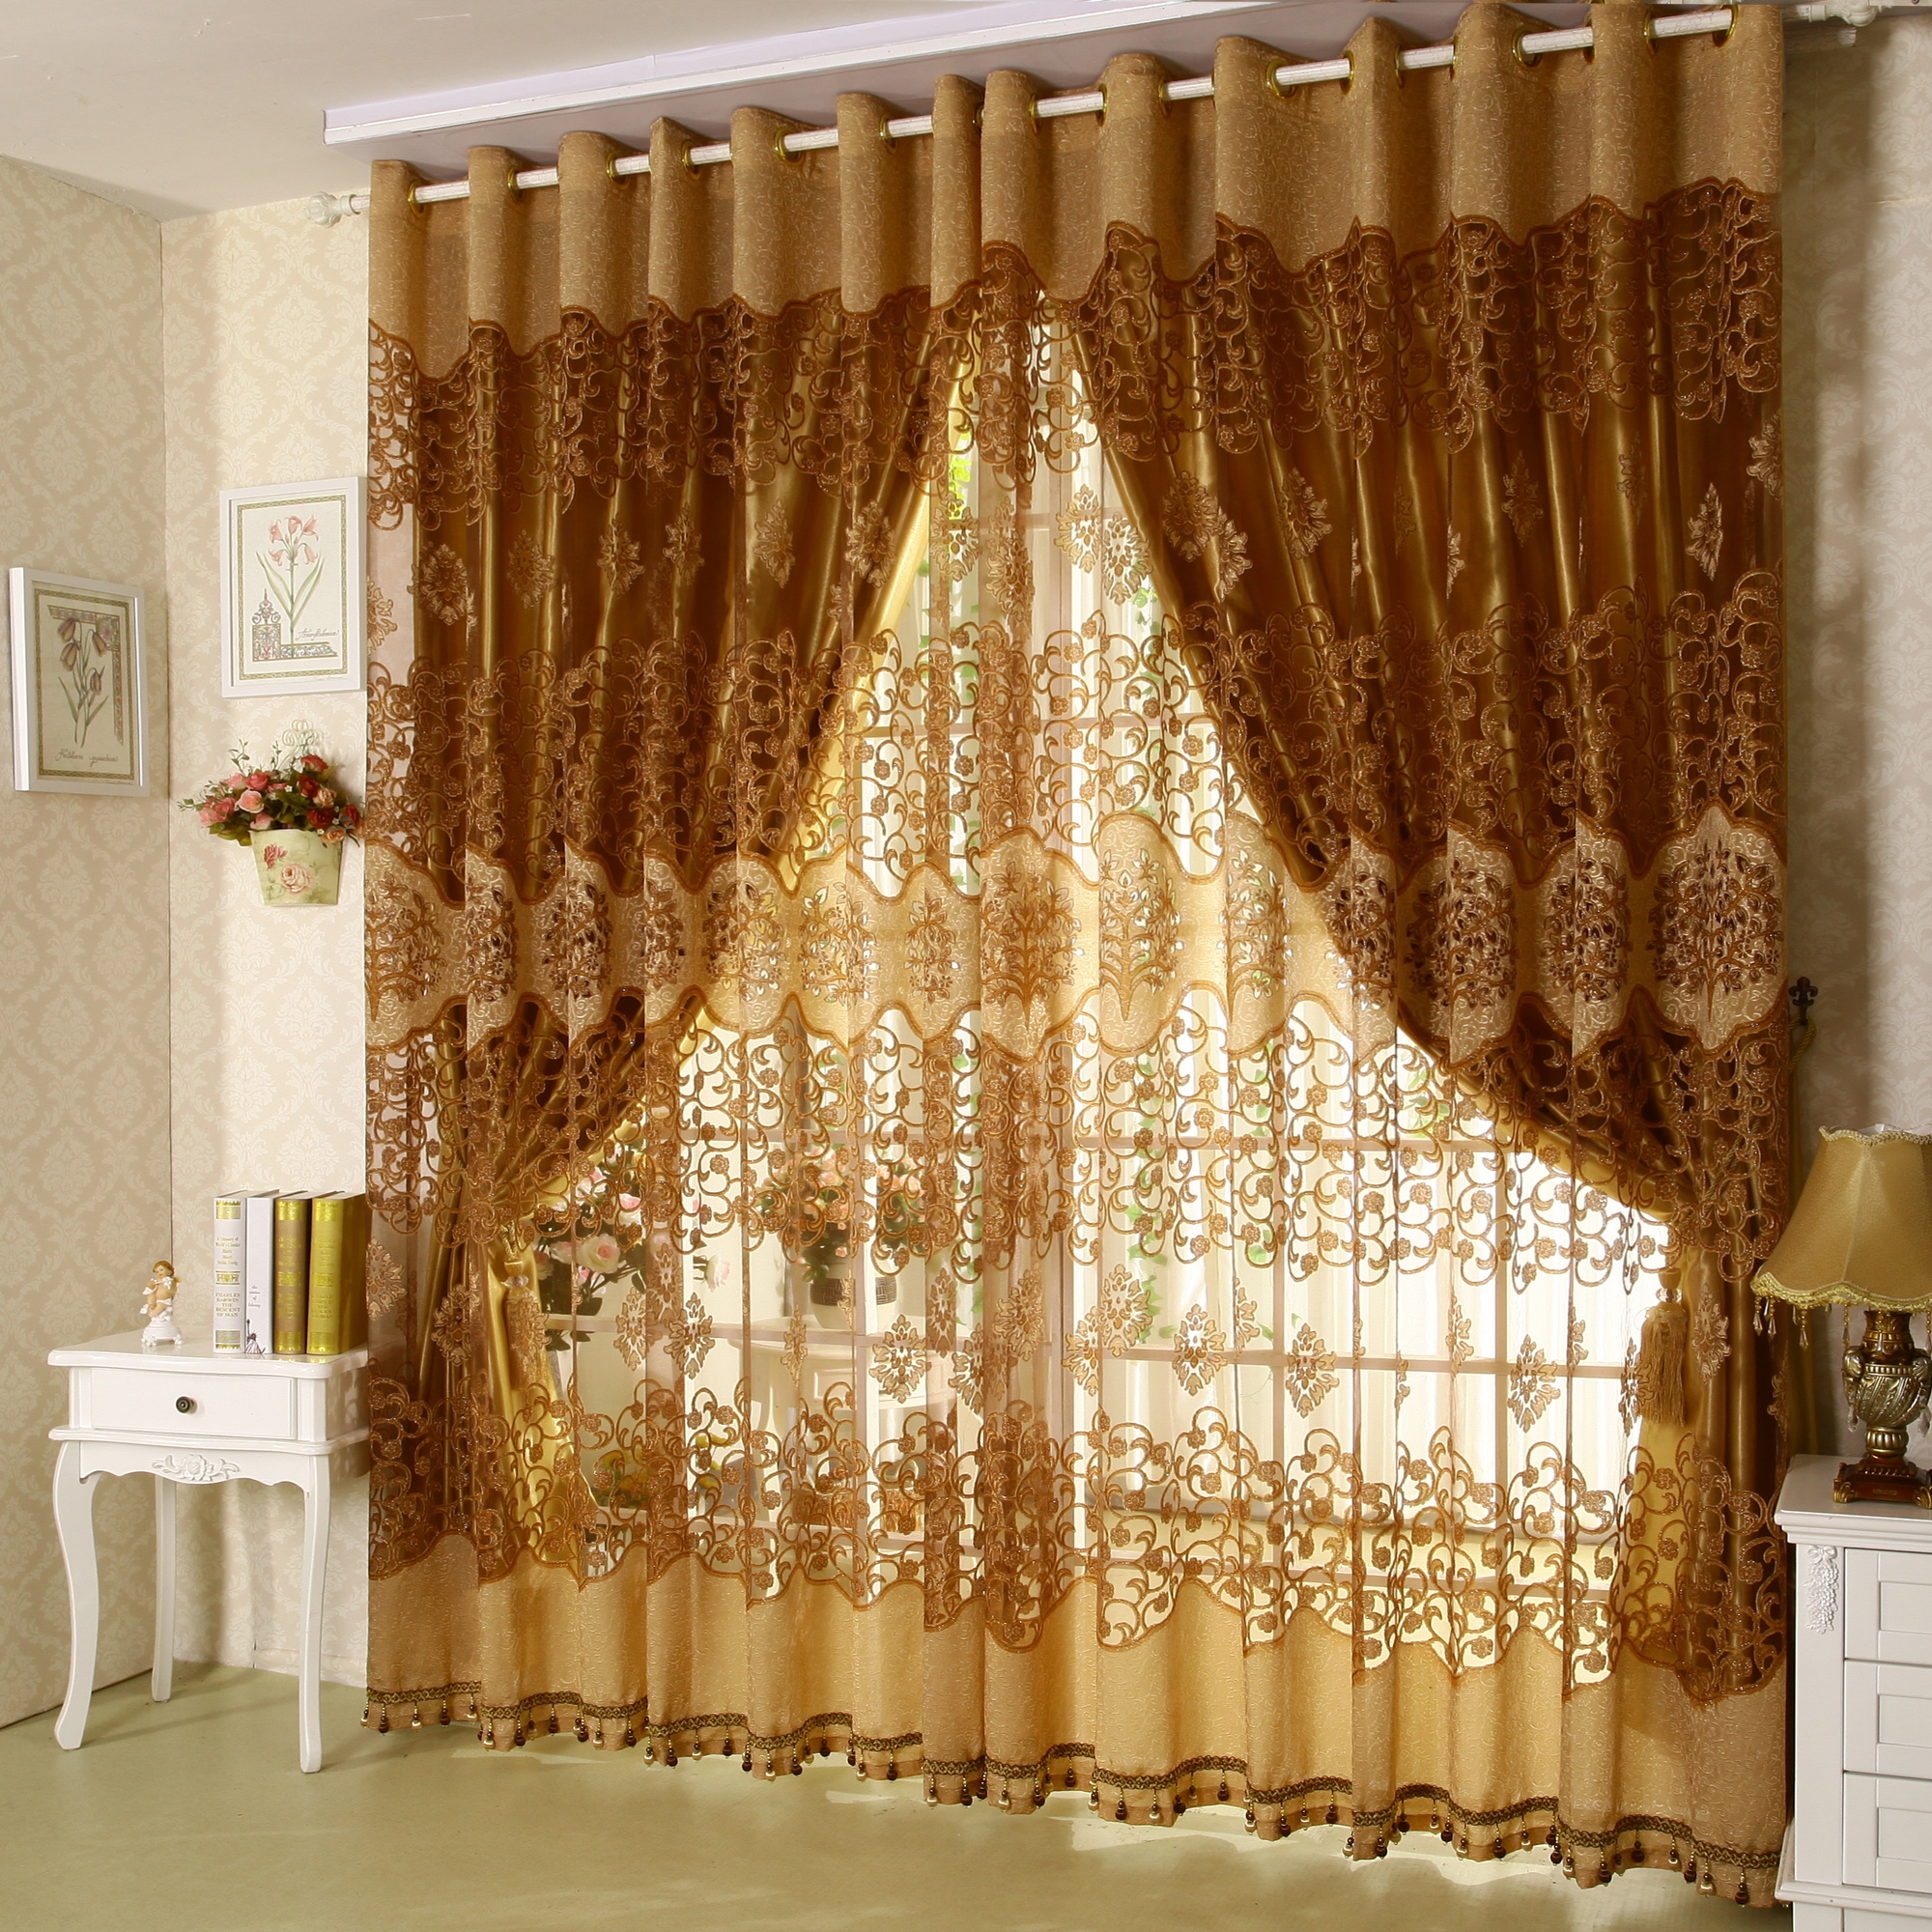 Curtains for bedroom windows with designs - Quality Flower Fashion Tree Design Window Screening With Blackout Curtain Living Room Curtain China